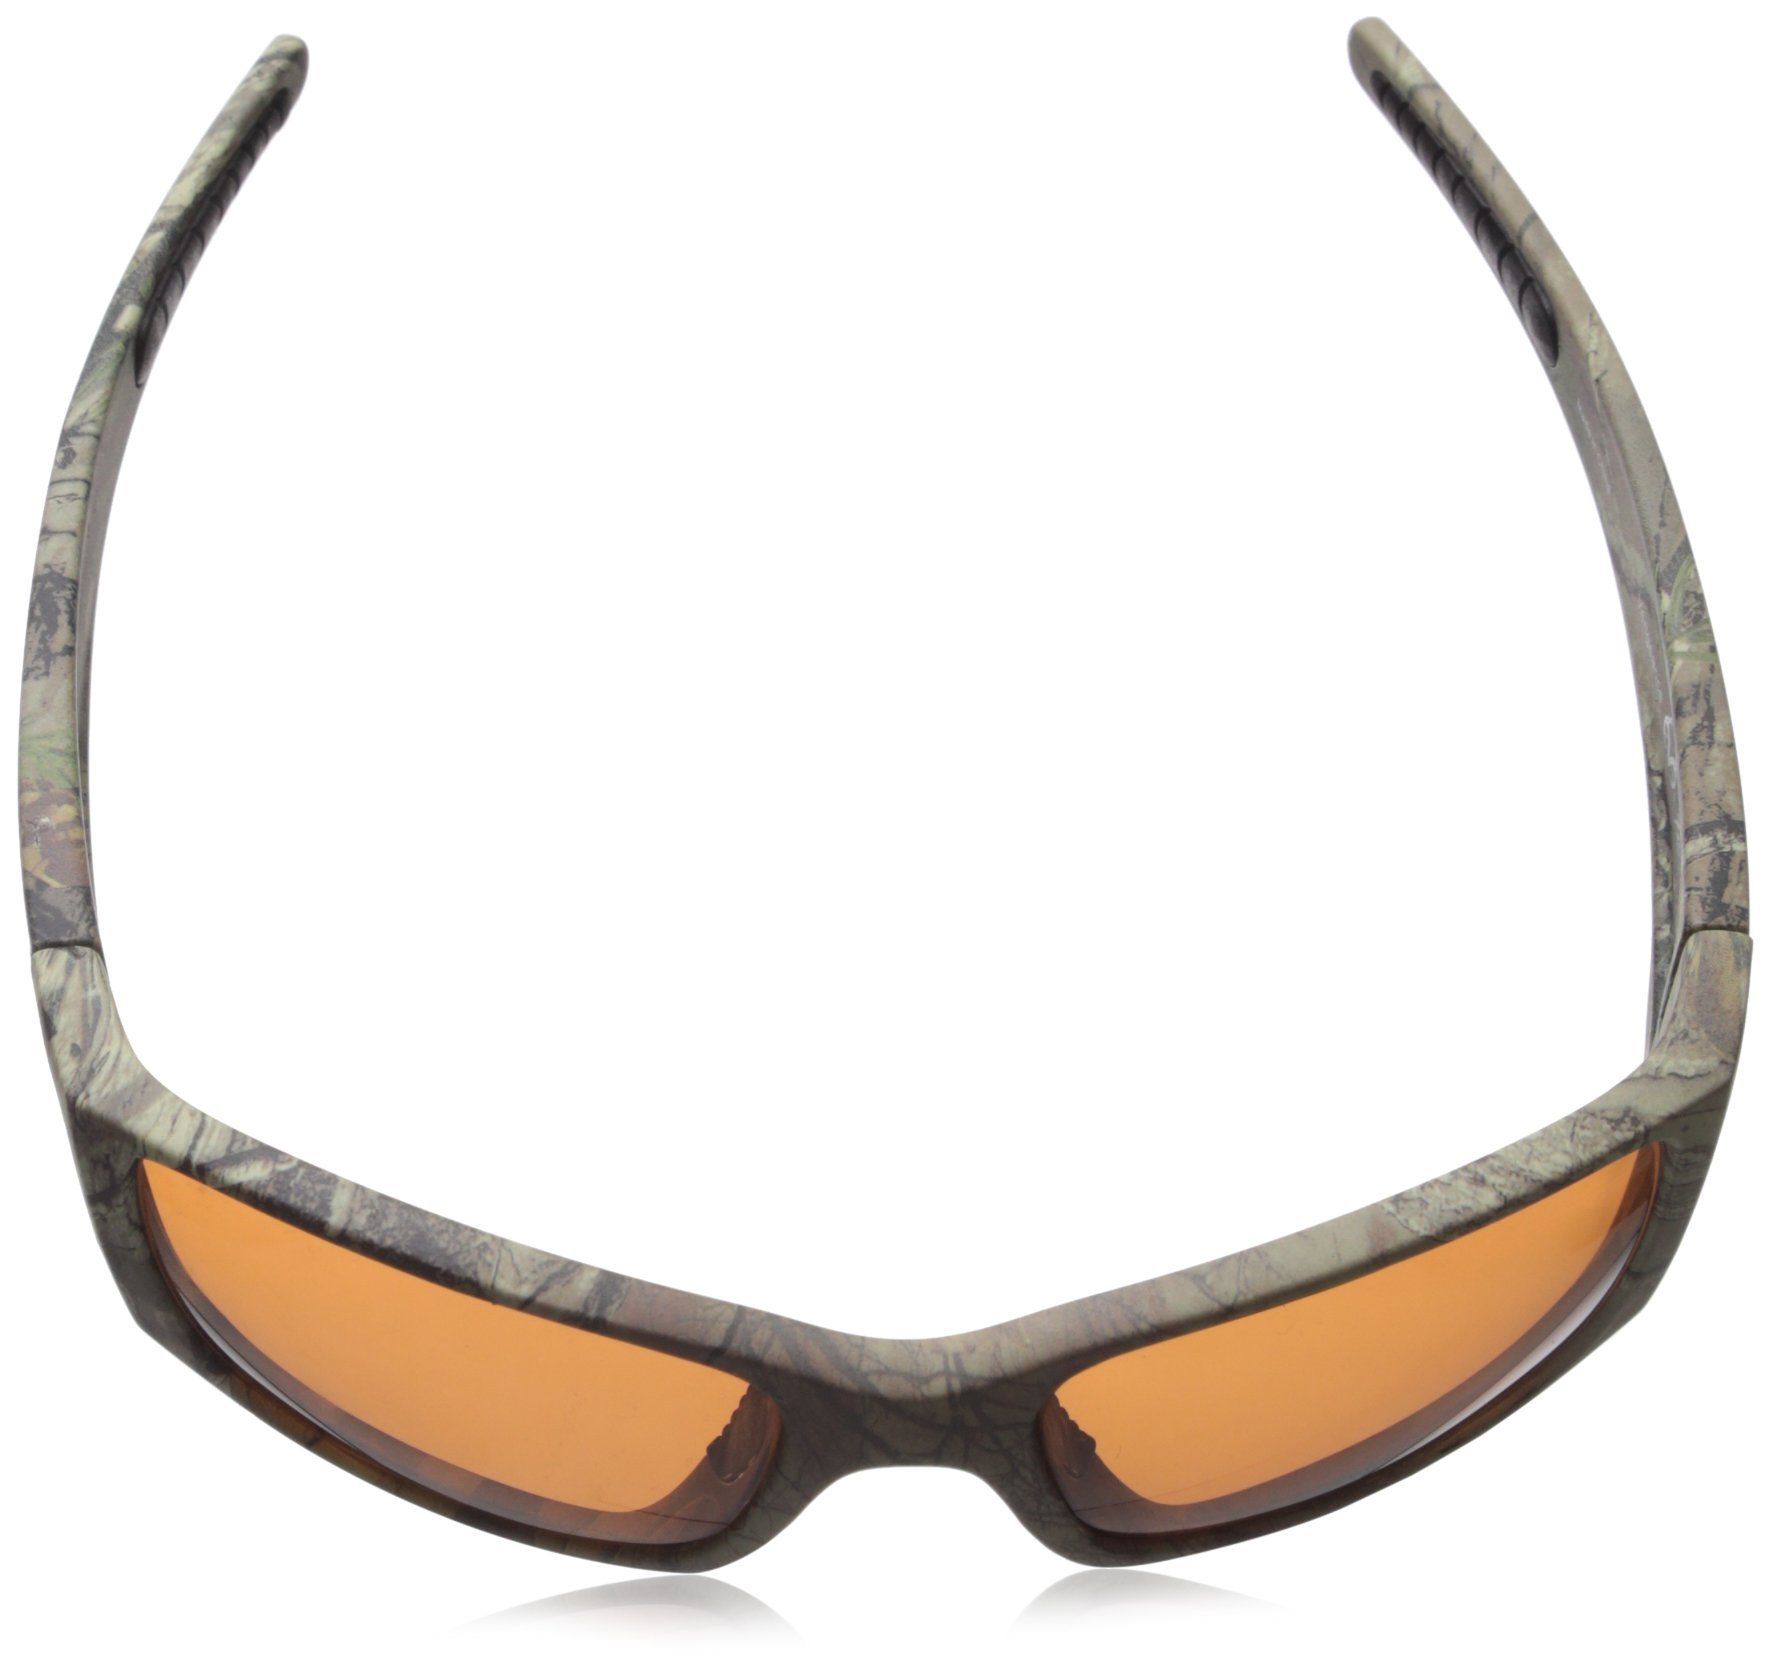 Vicious Vision Vengeance Pro Series Copper Lens Sunglasses, Realtree Xtra by Vicious Vision (Image #4)